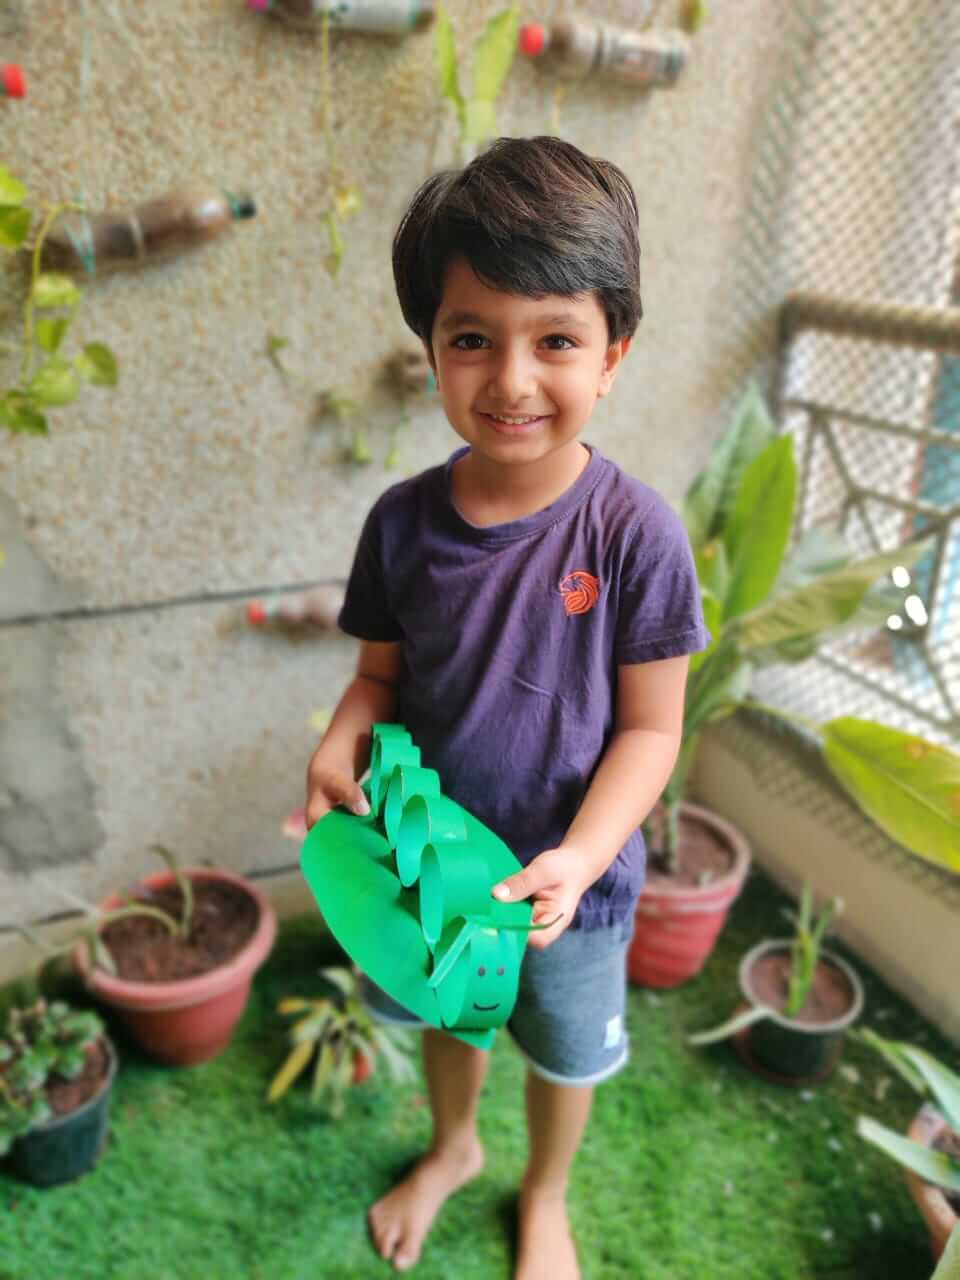 My son had to start schooling from this year but now 'homeschooling' & 'online learning' is the new normal. Here's how to Homeschool your Child in India?